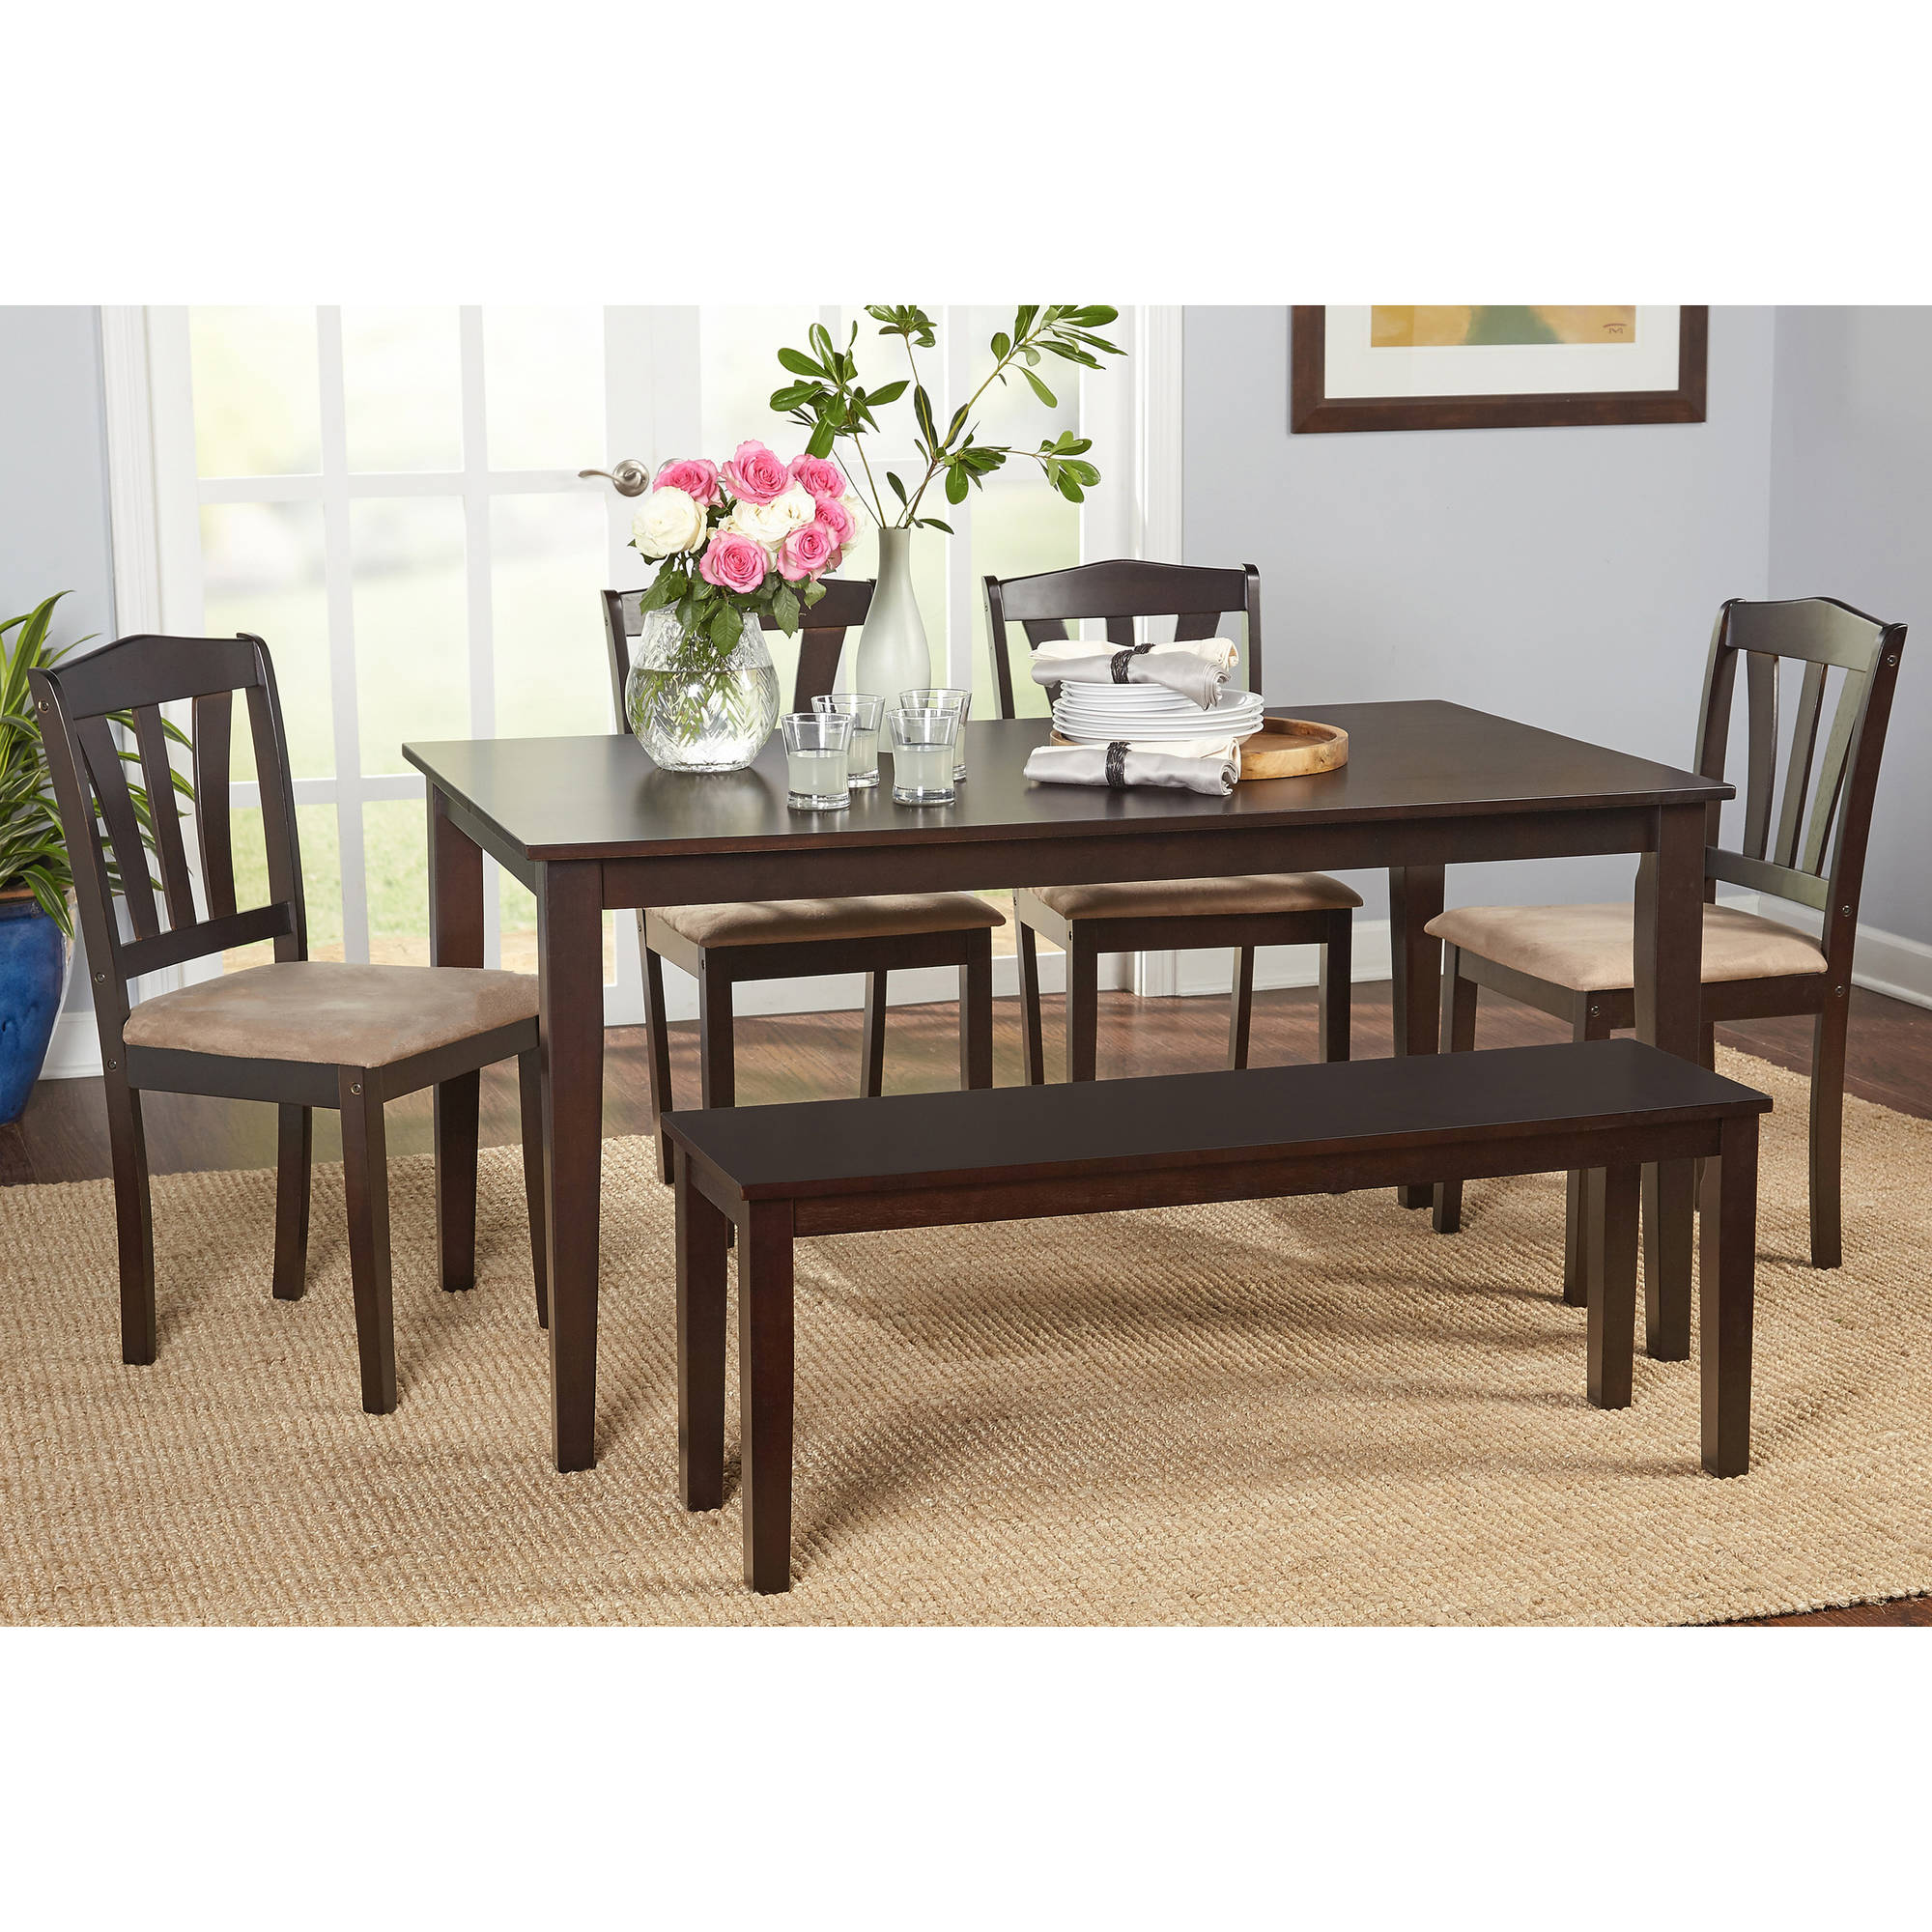 Metropolitan 6-Piece Dining Set with Bench Espresso Box 1 of 2  sc 1 st  Walmart & Dining Table Sets with Benches